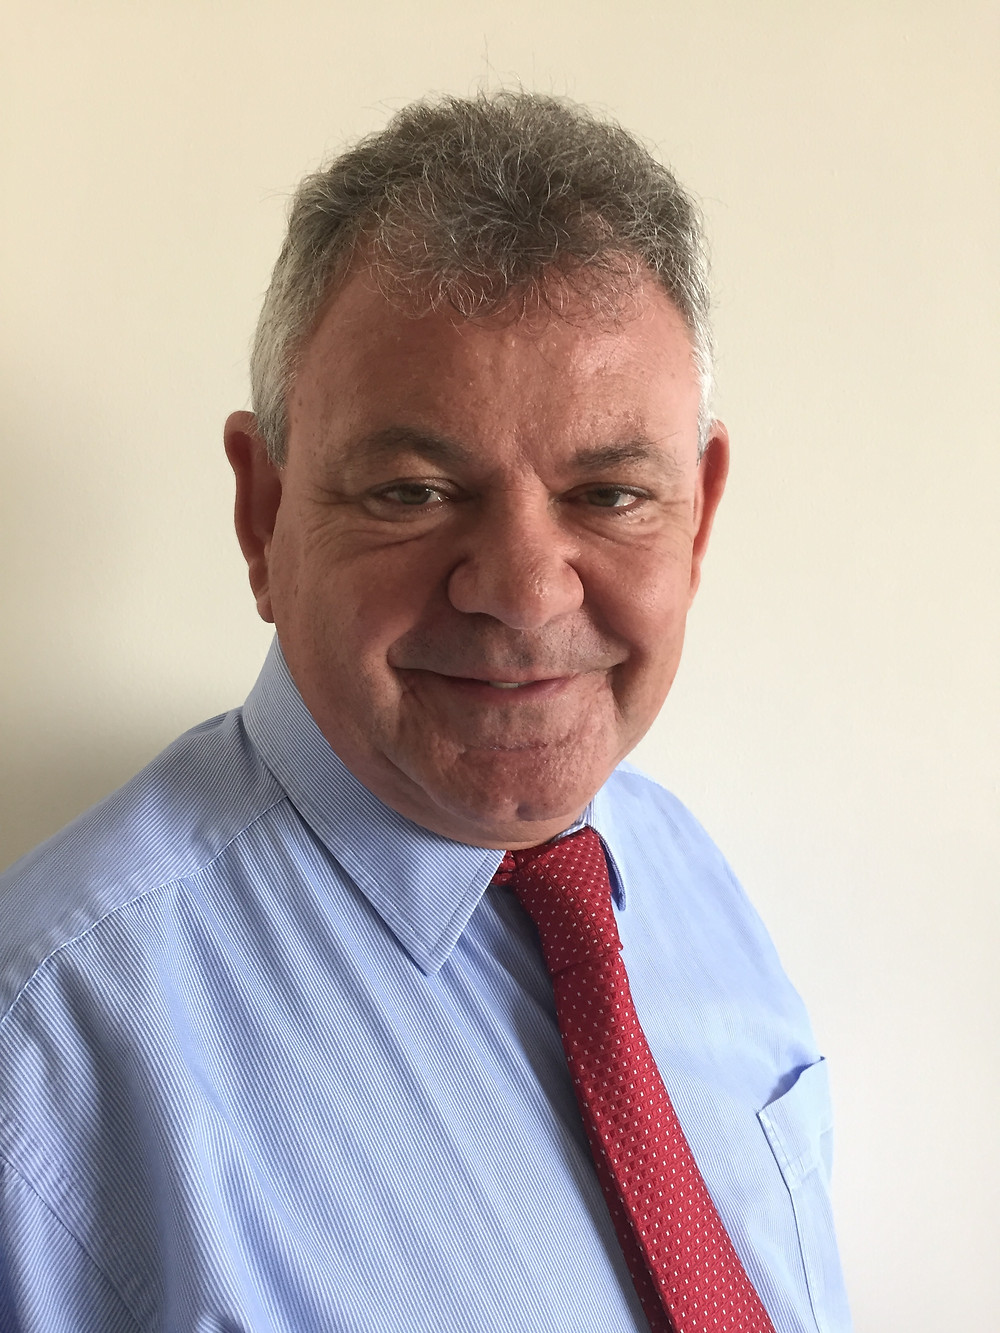 Tommy Hillock, Regional Manager, Fulkrum, Middle East and Caspian